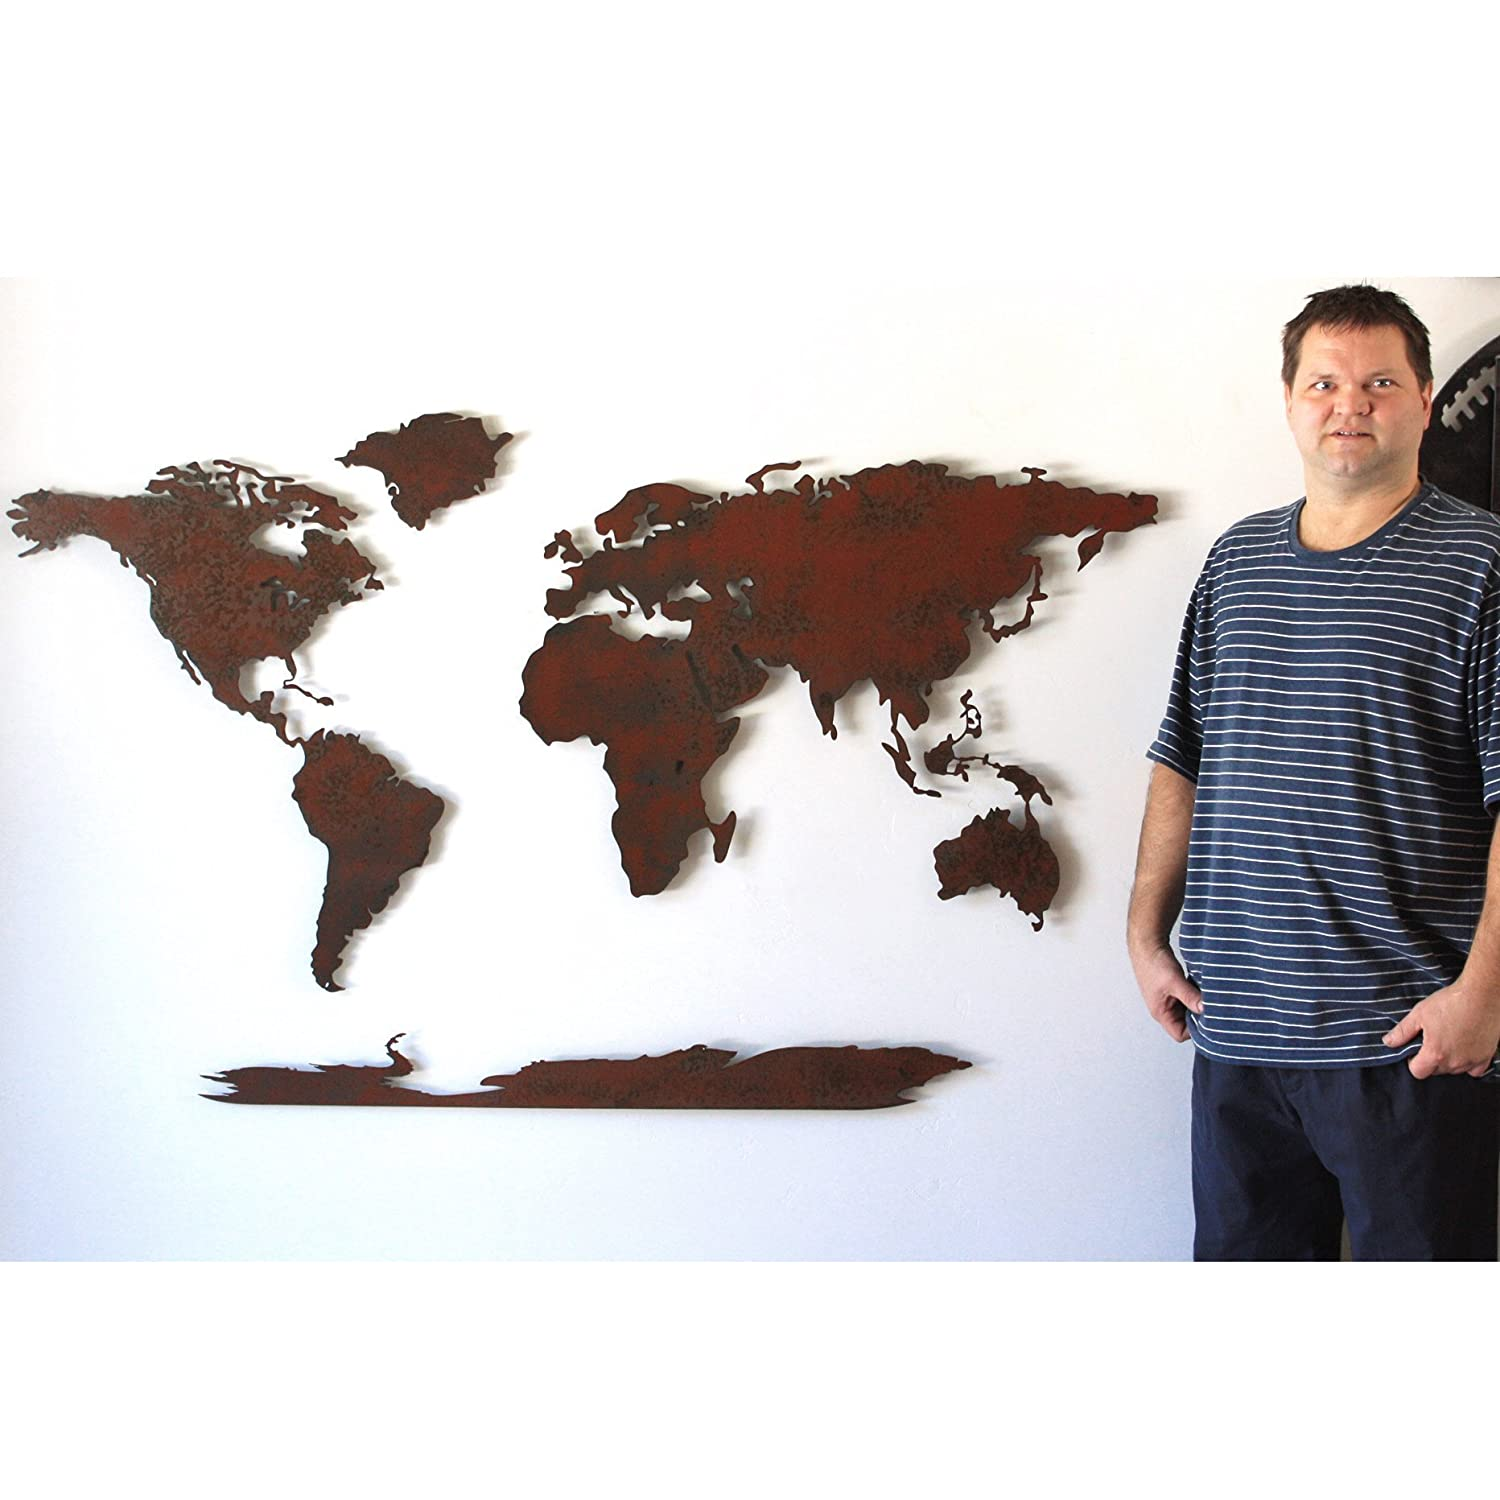 Amazon 30 x 50 inch world map metal wall art handmade amazon 30 x 50 inch world map metal wall art handmade choose your patina color handmade gumiabroncs Images